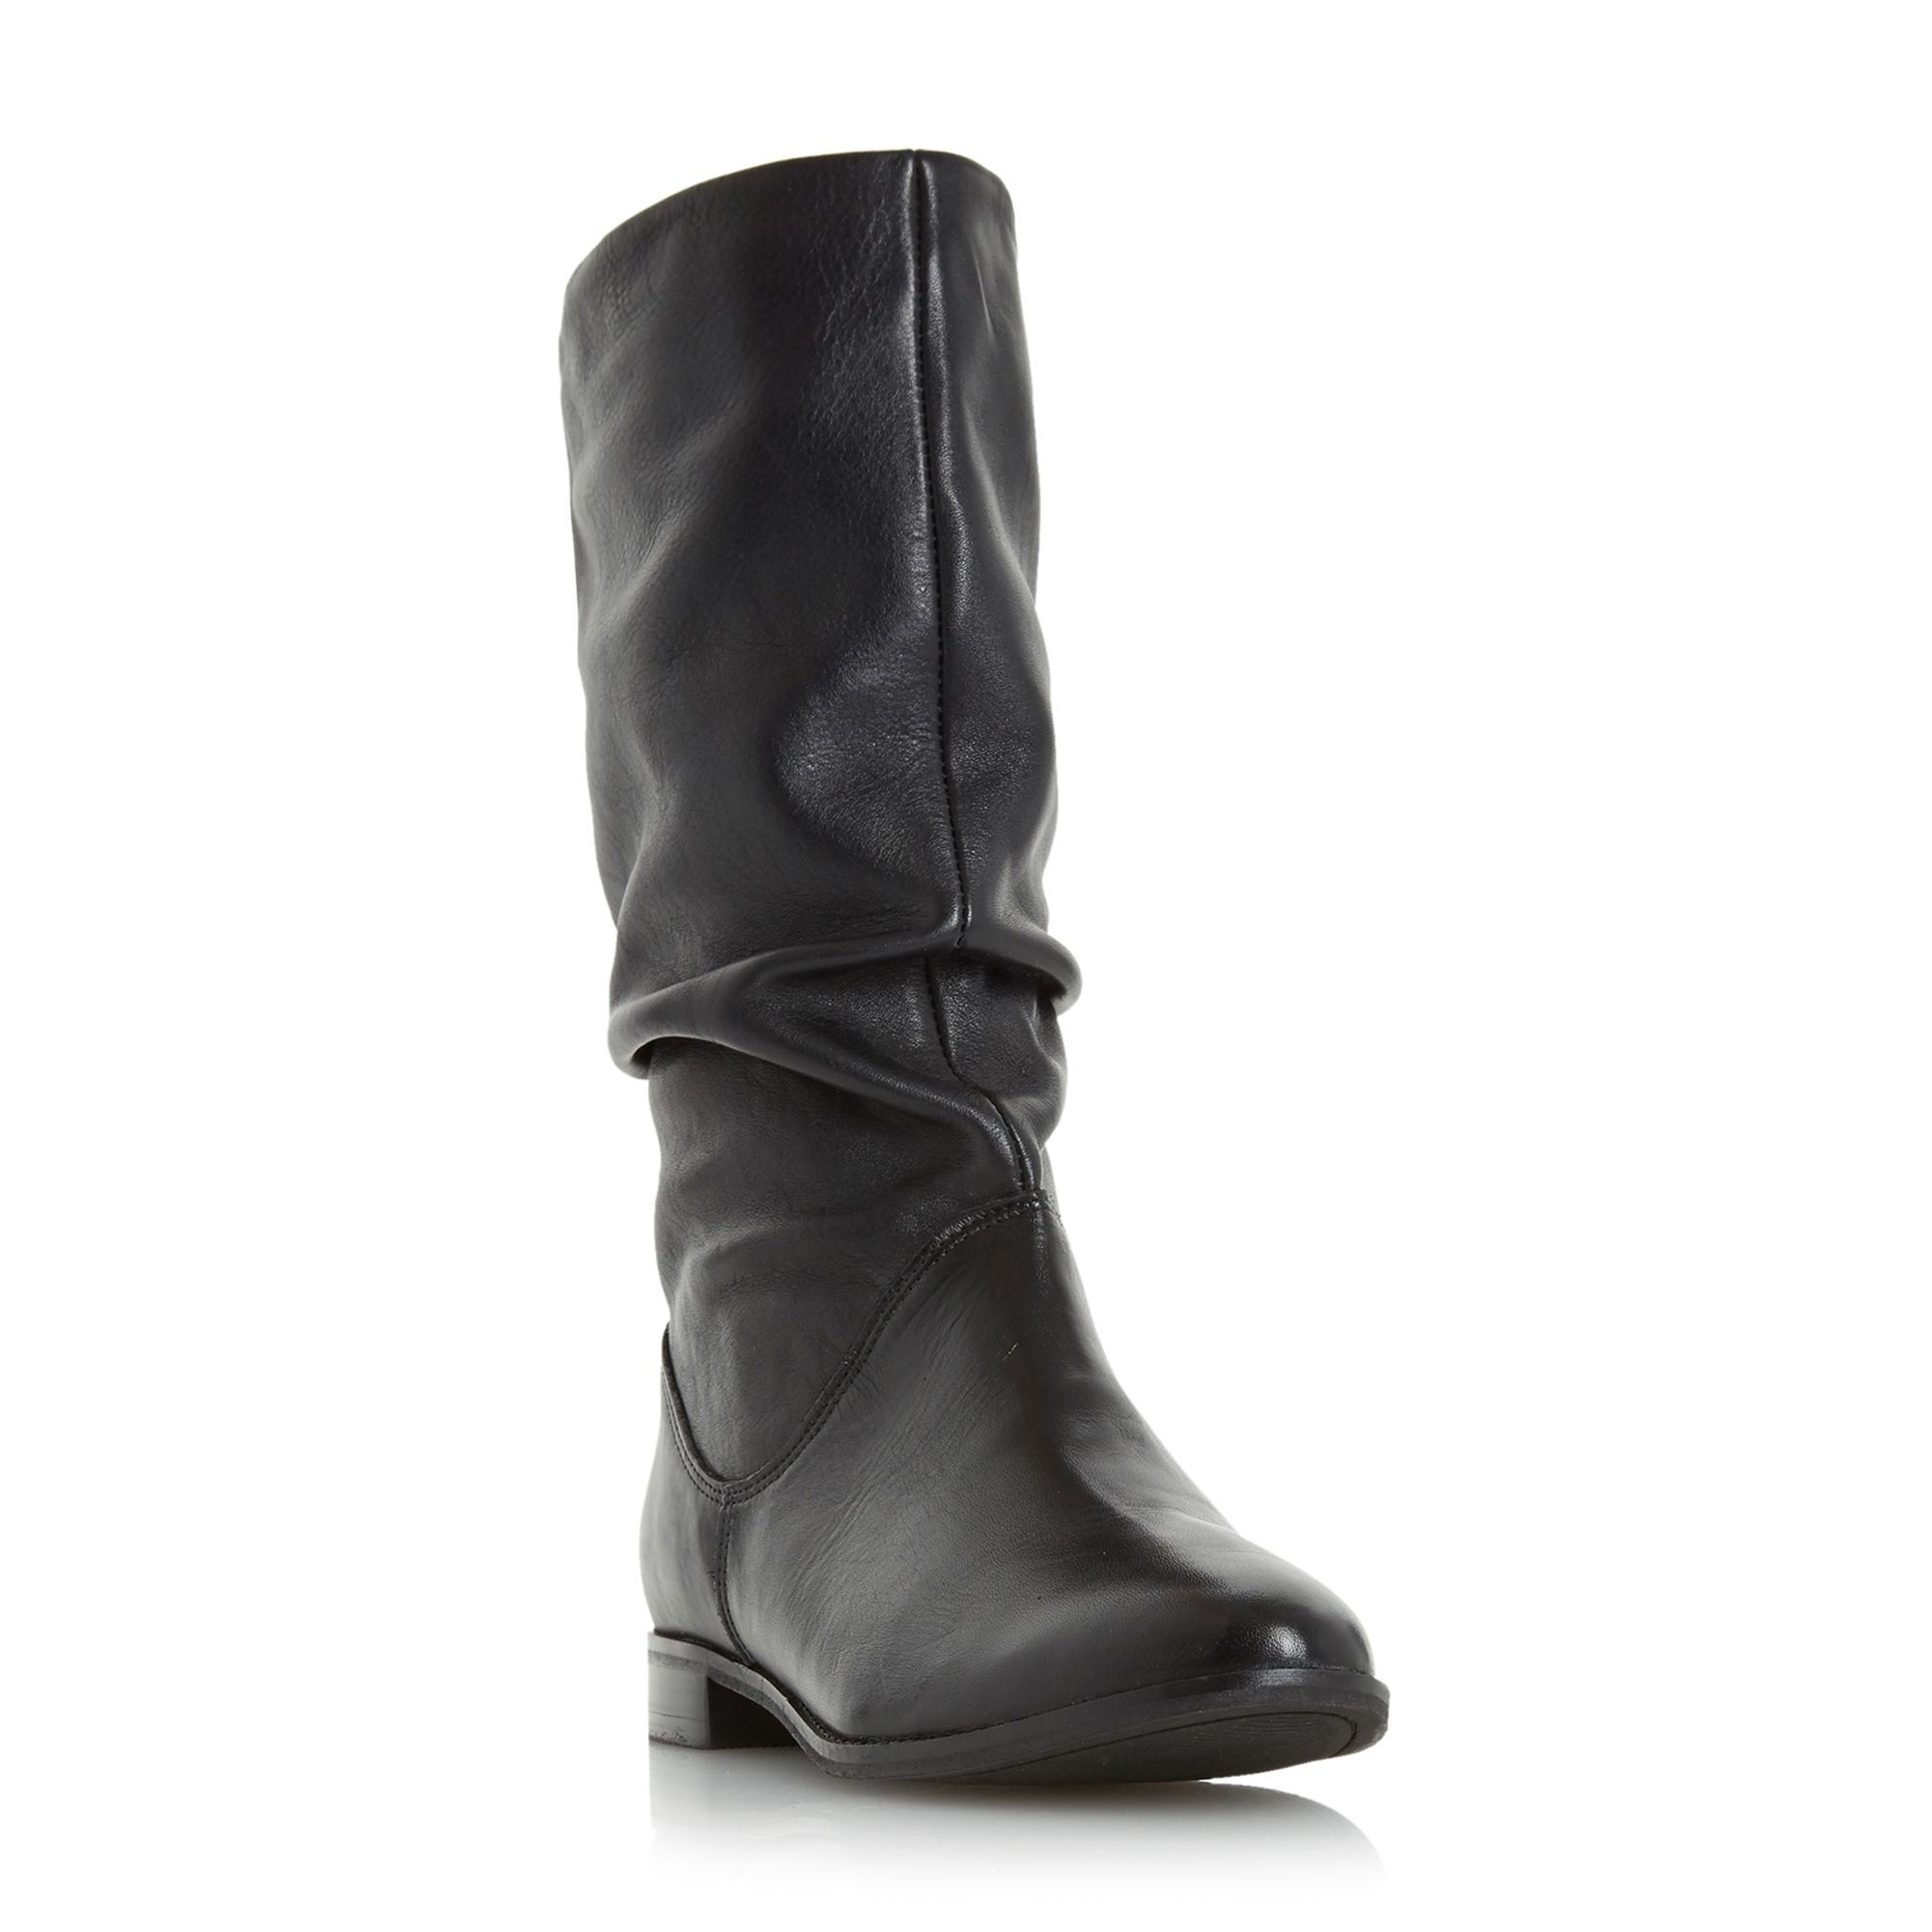 Dune Rosalind slouch calf boots Black